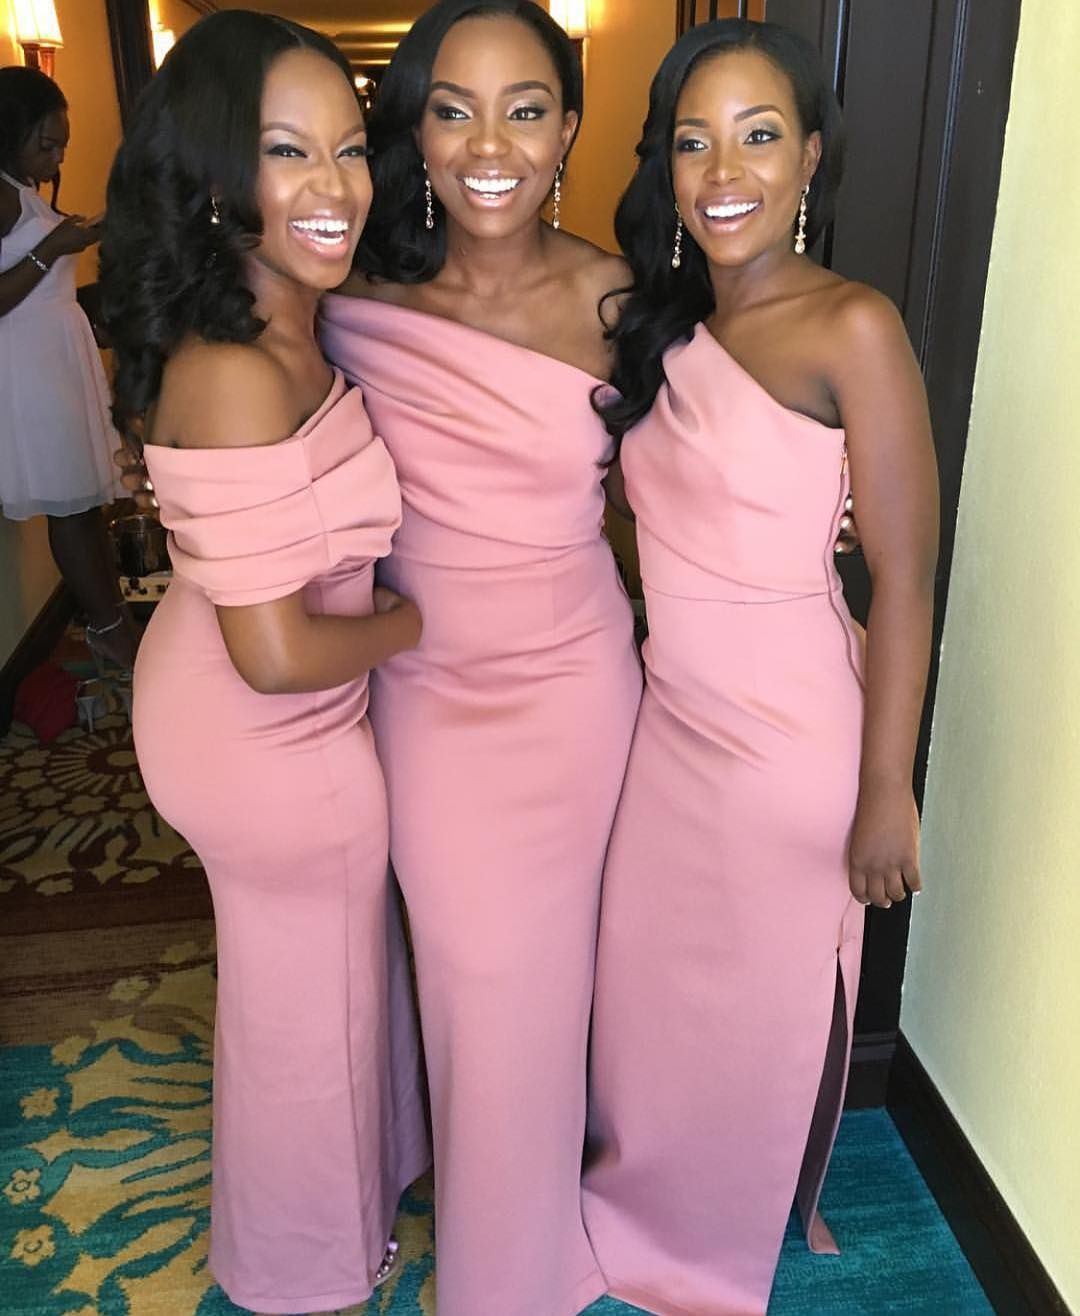 Pretty #bridesmaids dresses! @pretty_cute19. #munabridesmaids ...